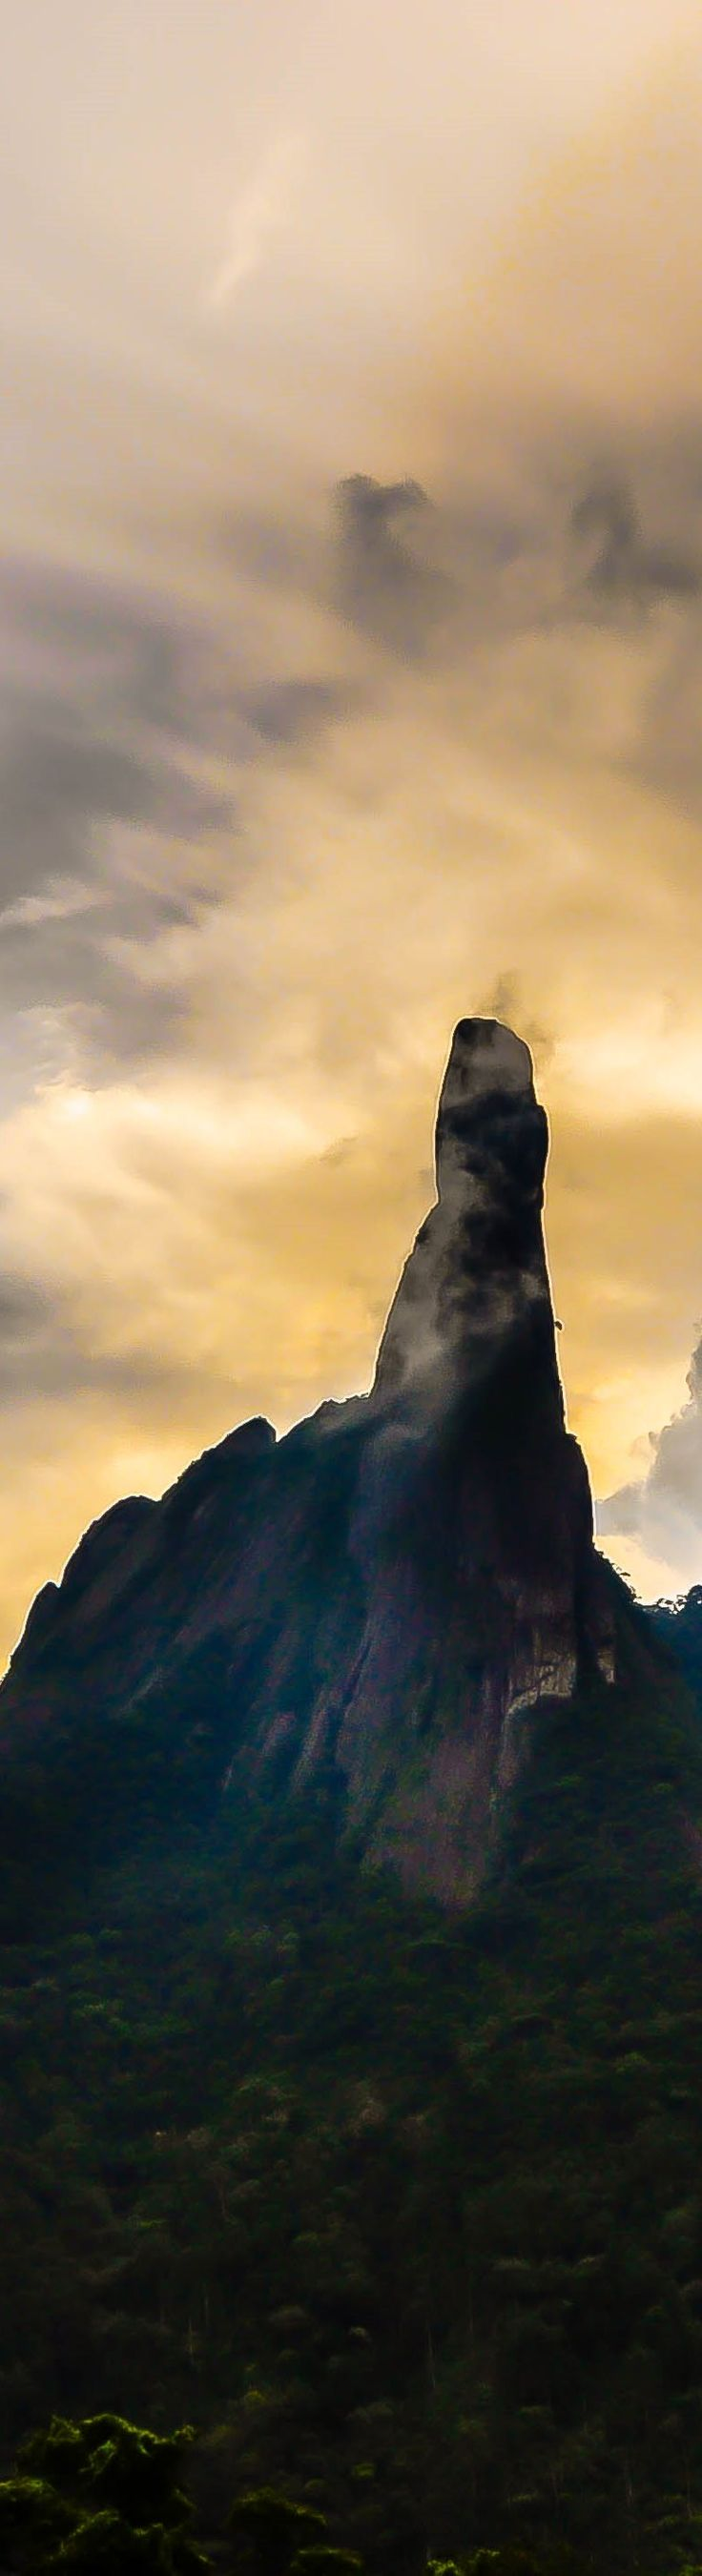 """The Finger of God"" in Teresópolis - Rio de Janeiro.  Finger of God is a peak at 1692 m altitude at the top, and whose outline resembles a hand pointing the finger at the sky. It is one of several geological monuments of the Organ Mountains, a region understood sector of the Serra do Mar - between the cities of Petropolis, Teresopolis Guapimirim and in the state of Rio de Janeiro, Brazil."